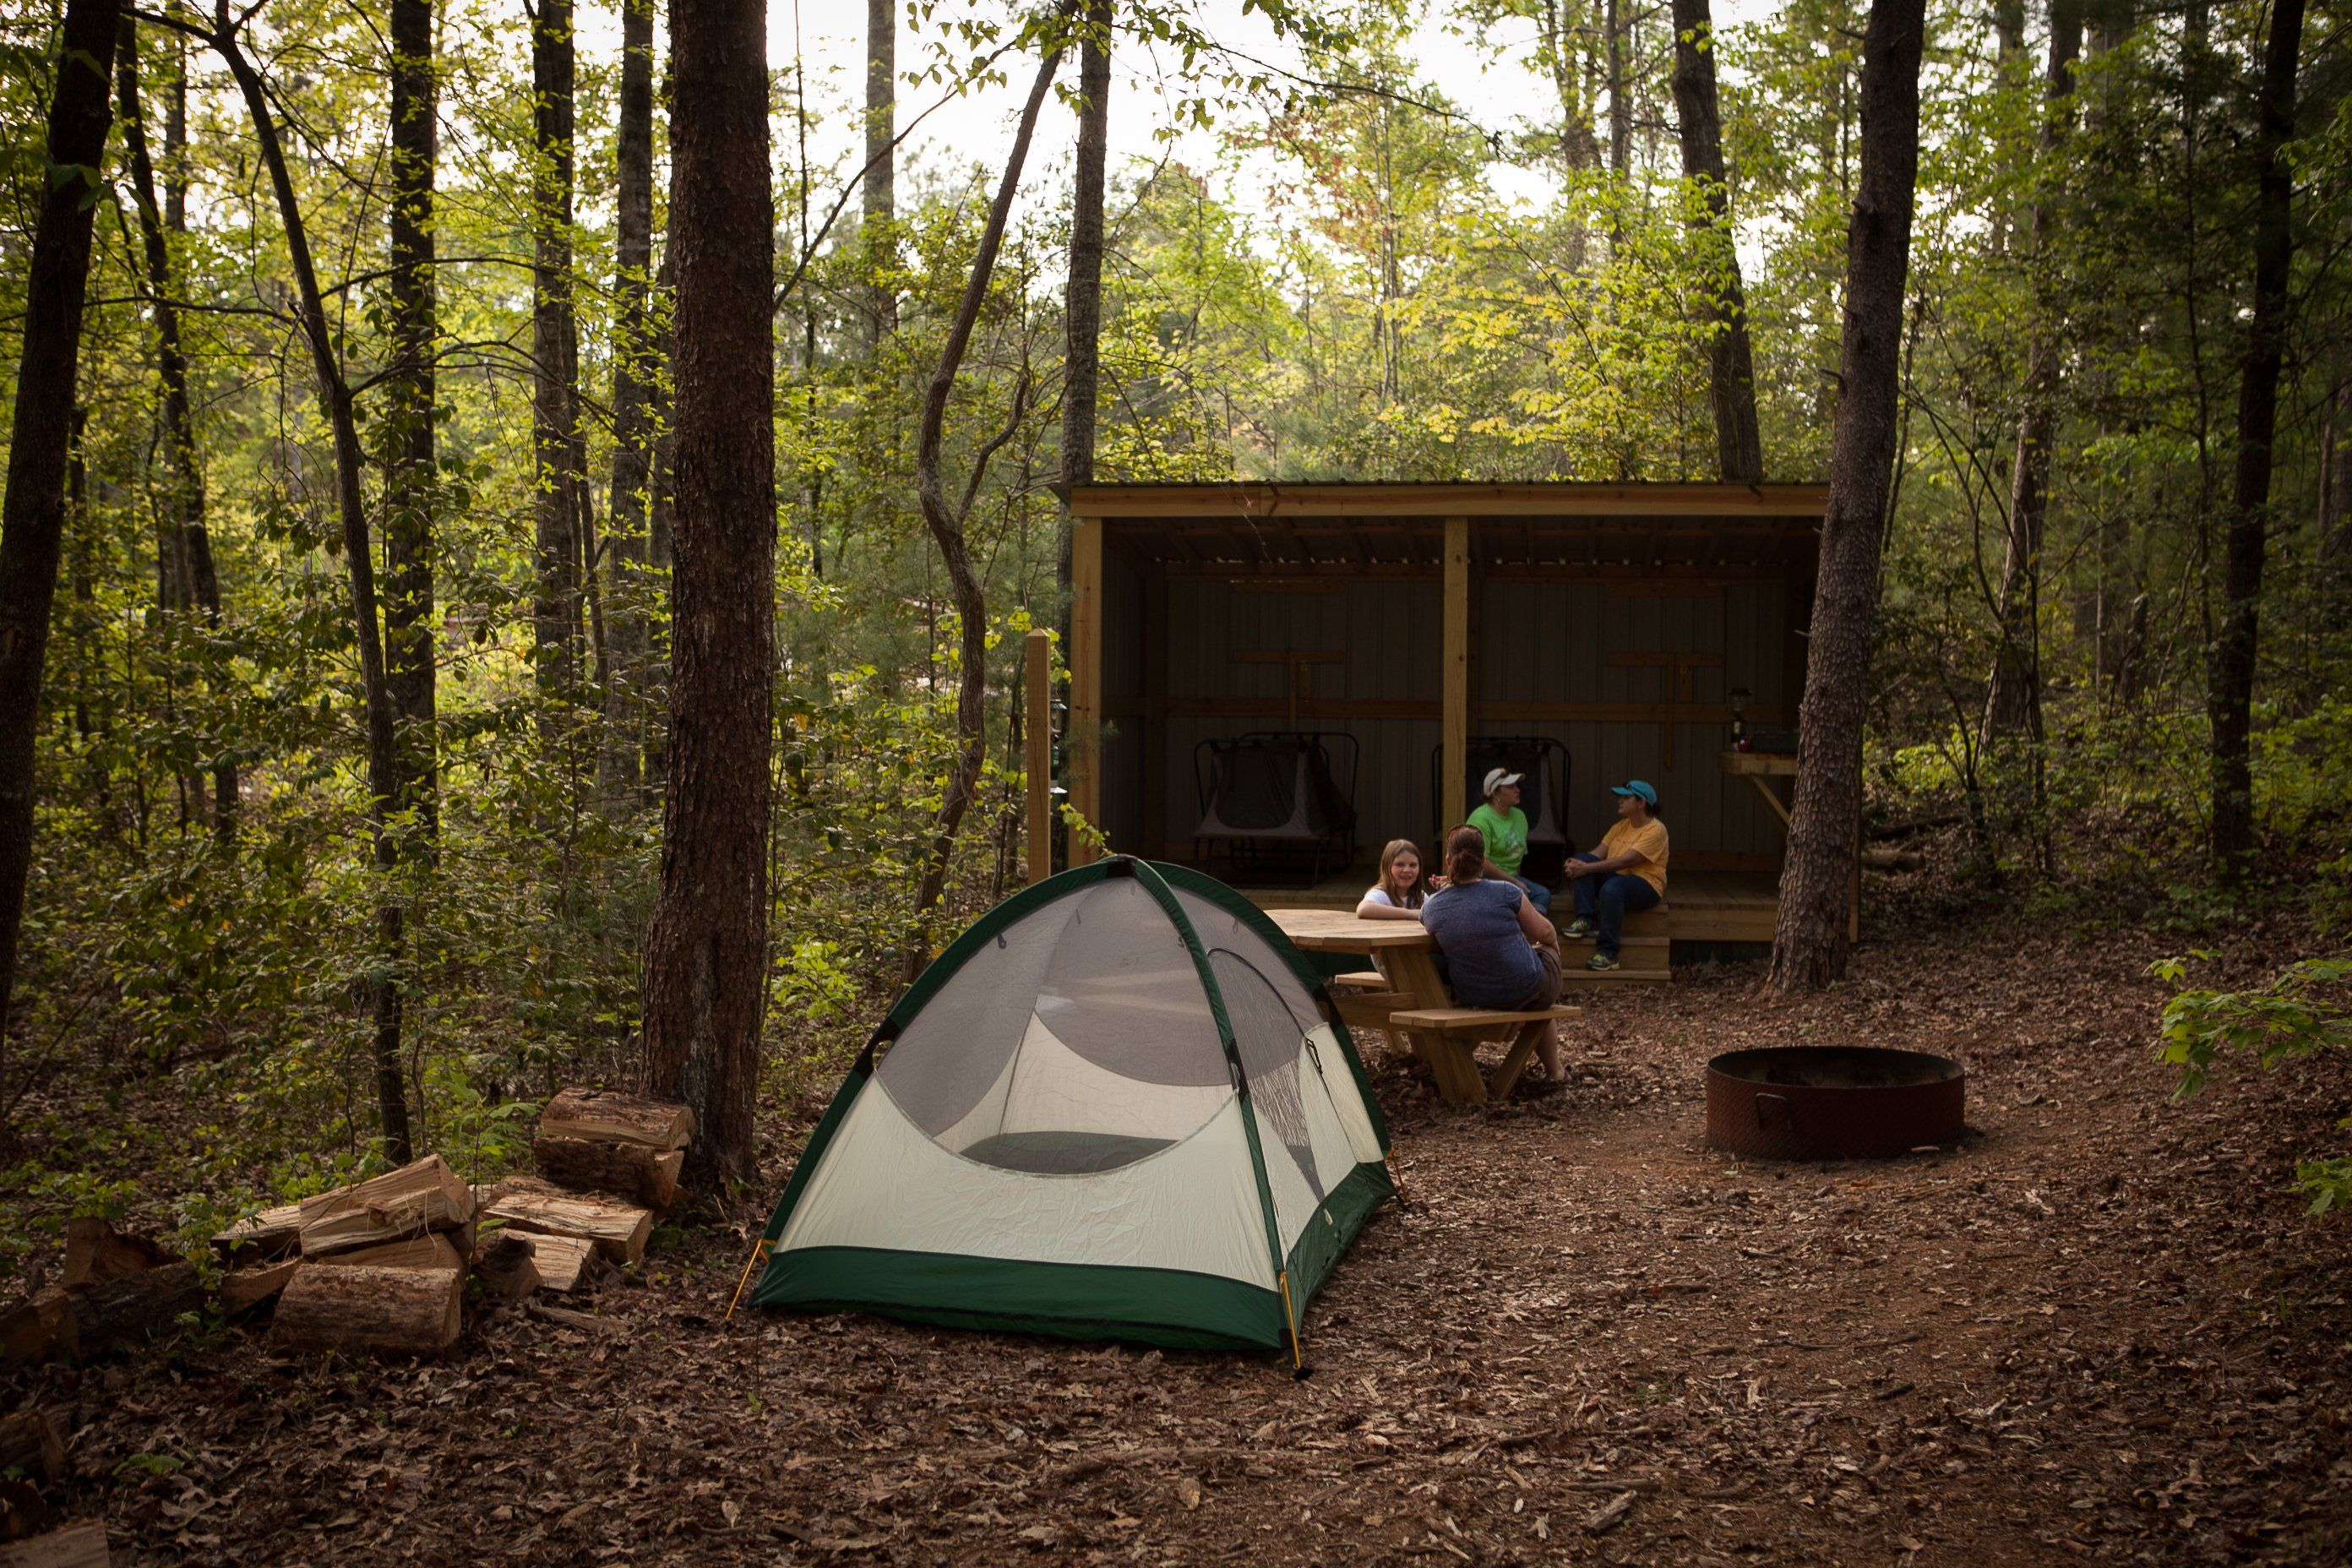 The Rustic Mountain Campground In South Carolina That's ...